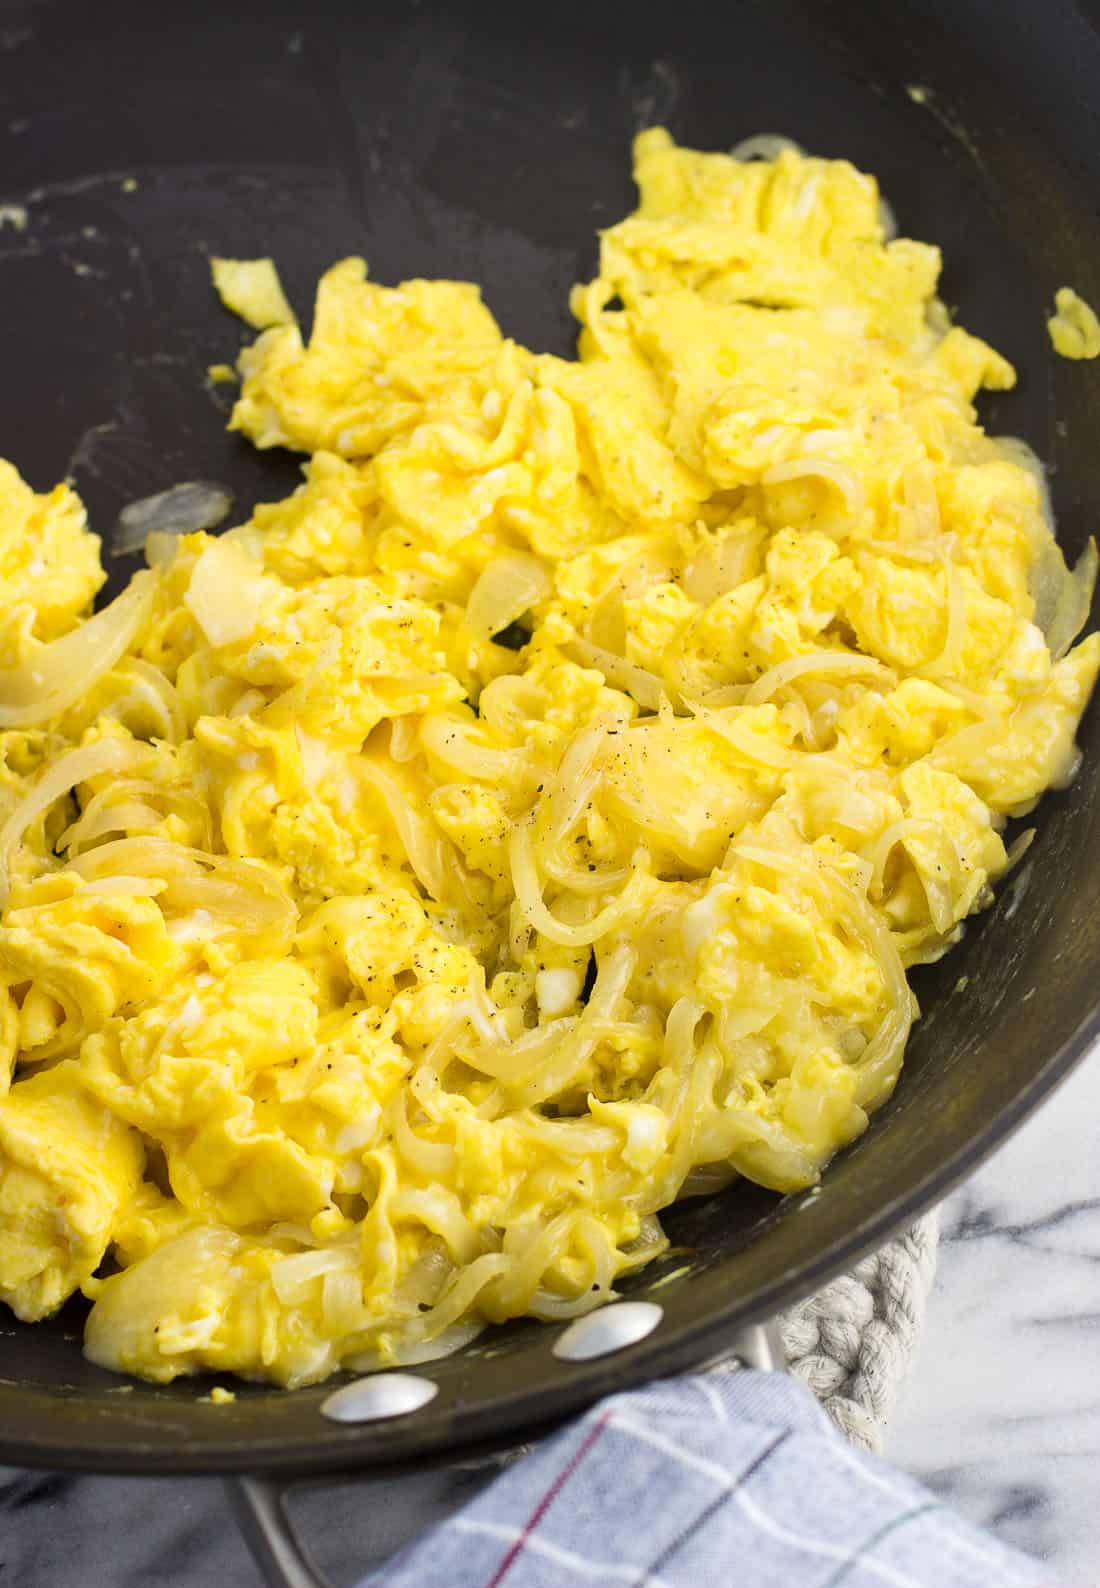 Scrambled eggs mixed with cheese and sauteed onion slices in a skillet